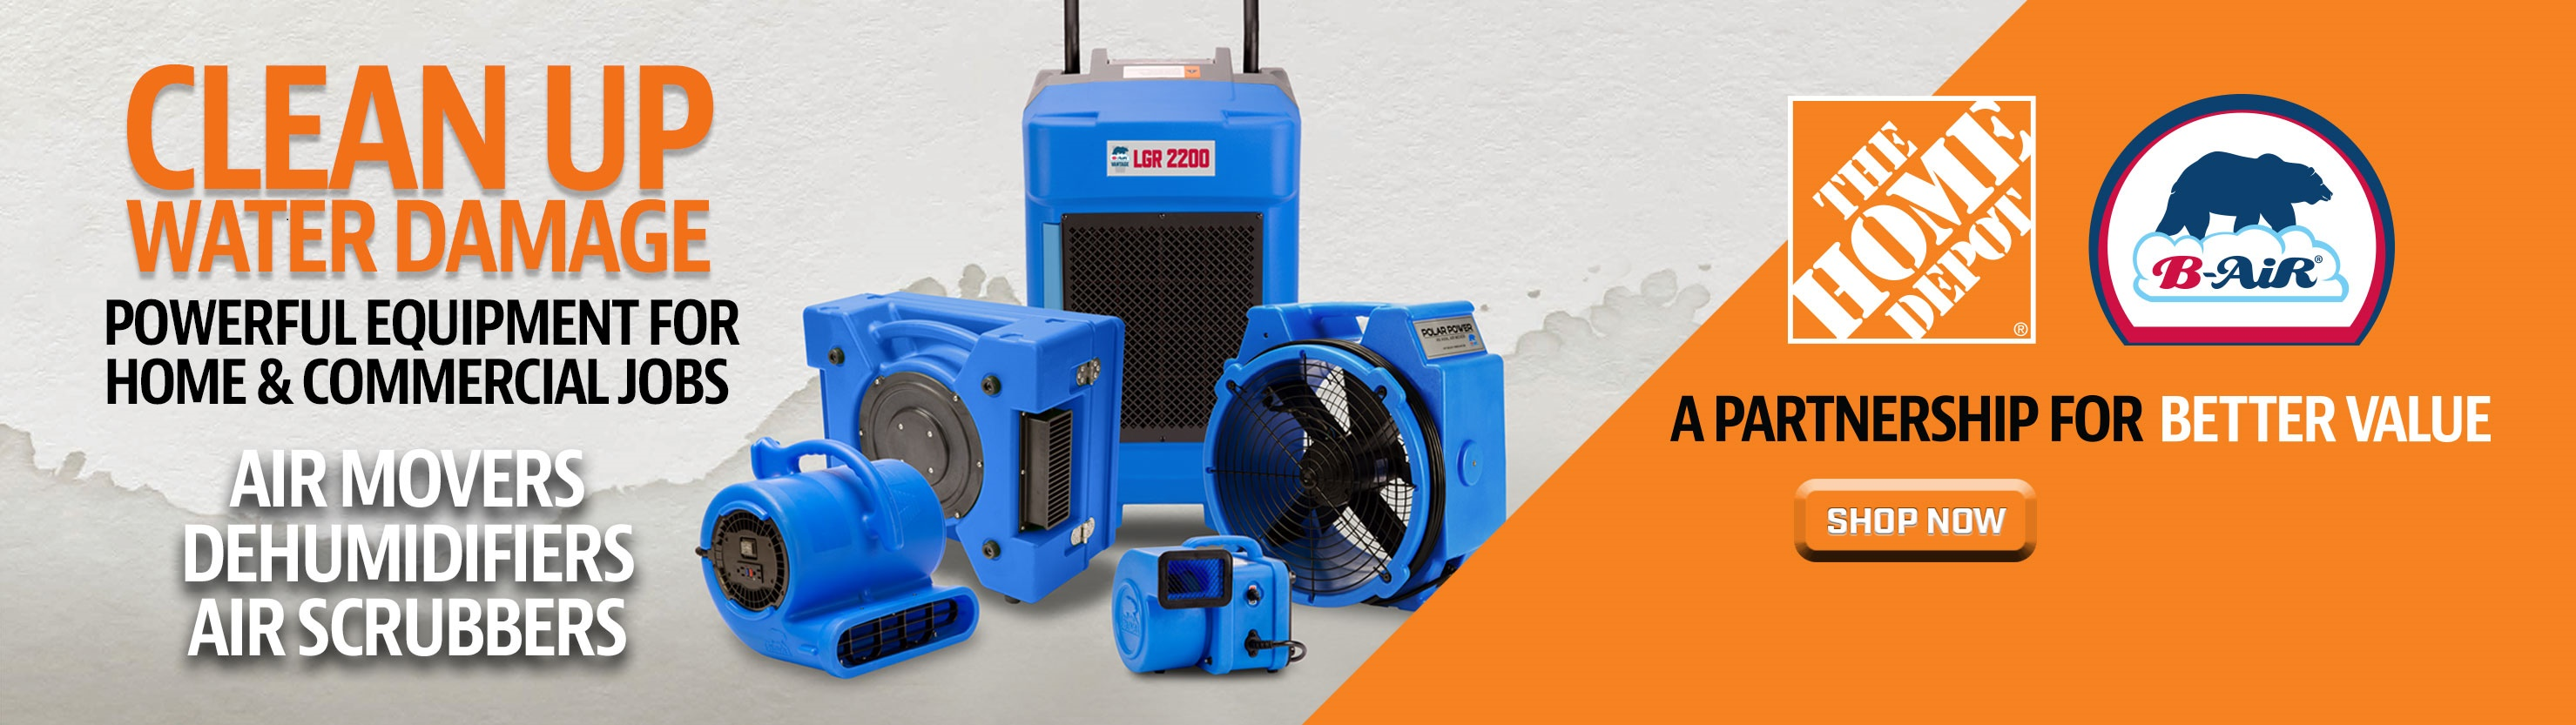 B Air Blowers Air Movers & Dehumidifiers